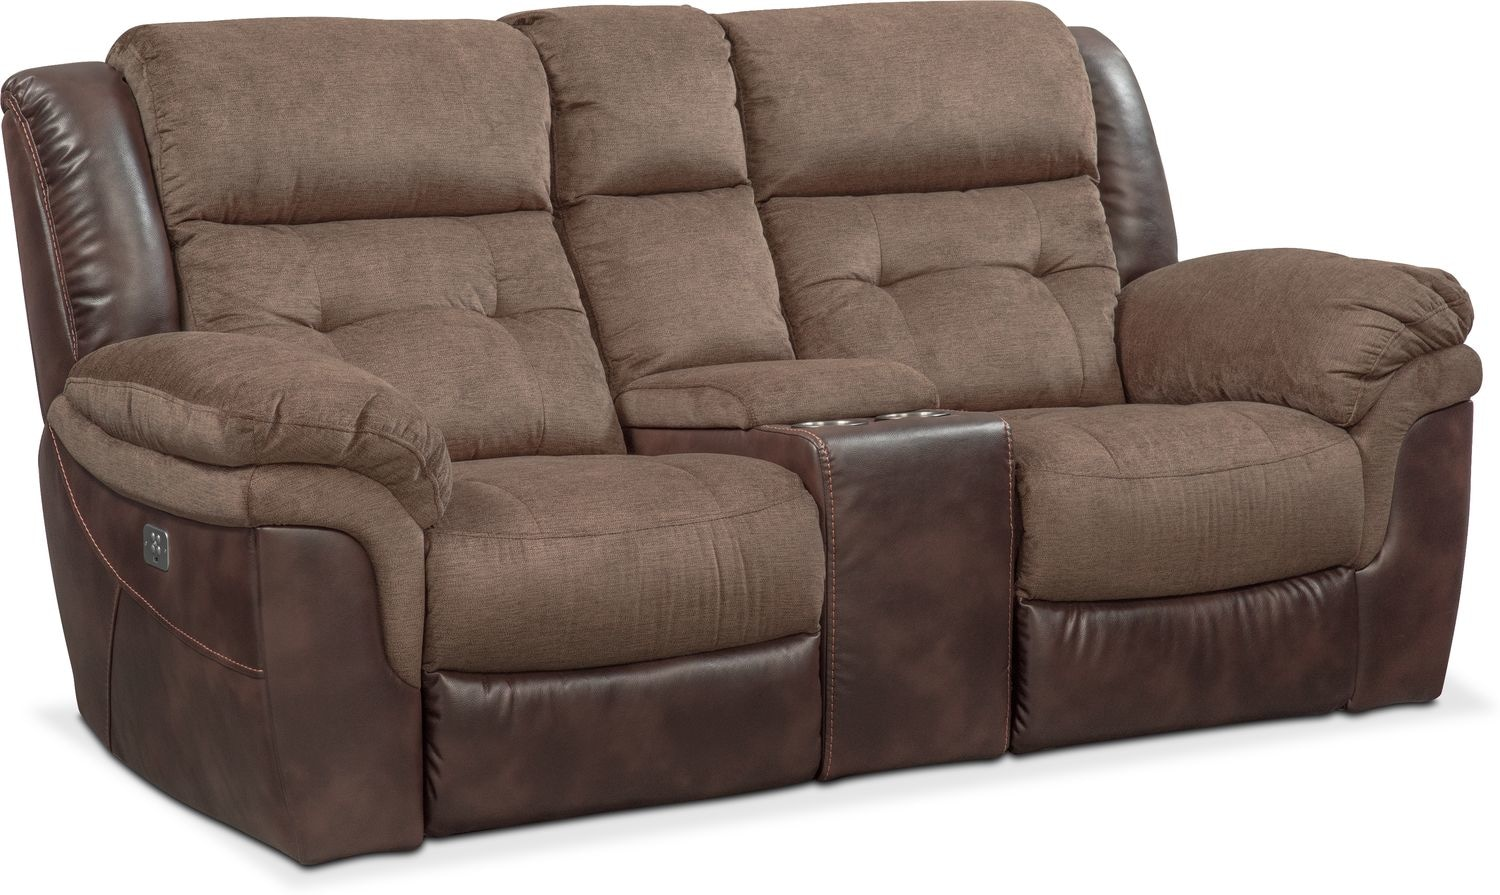 Tacoma Dual Power Reclining Loveseat with Console | Value City